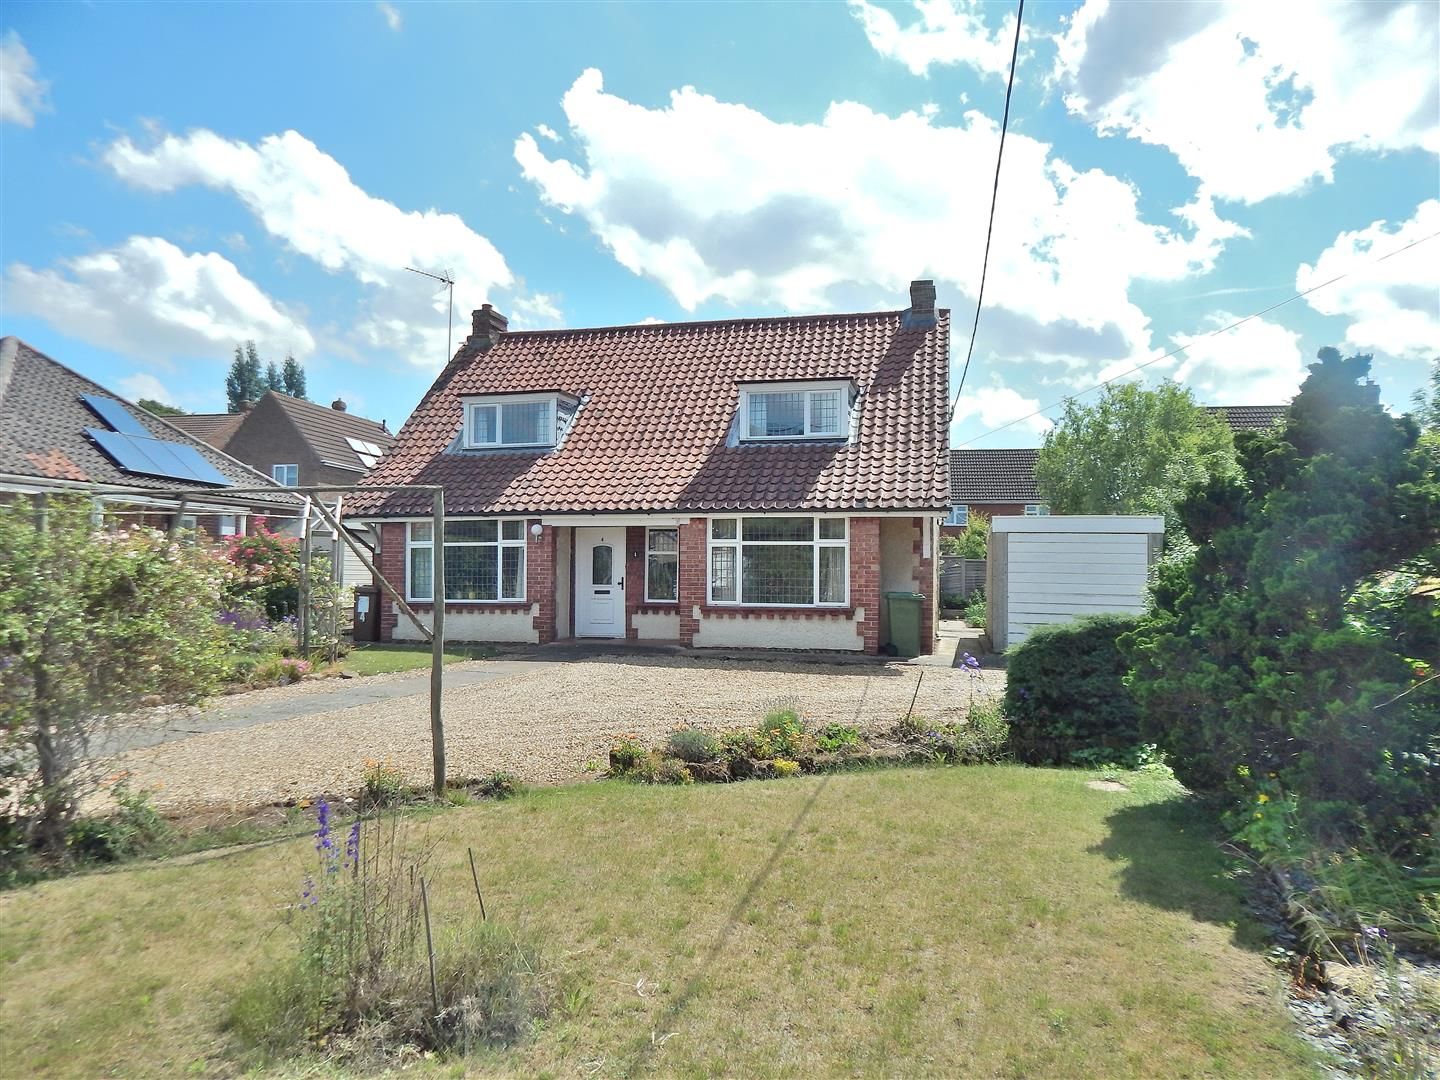 4 bed detached bungalow for sale in King's Lynn, PE31 6HT 0